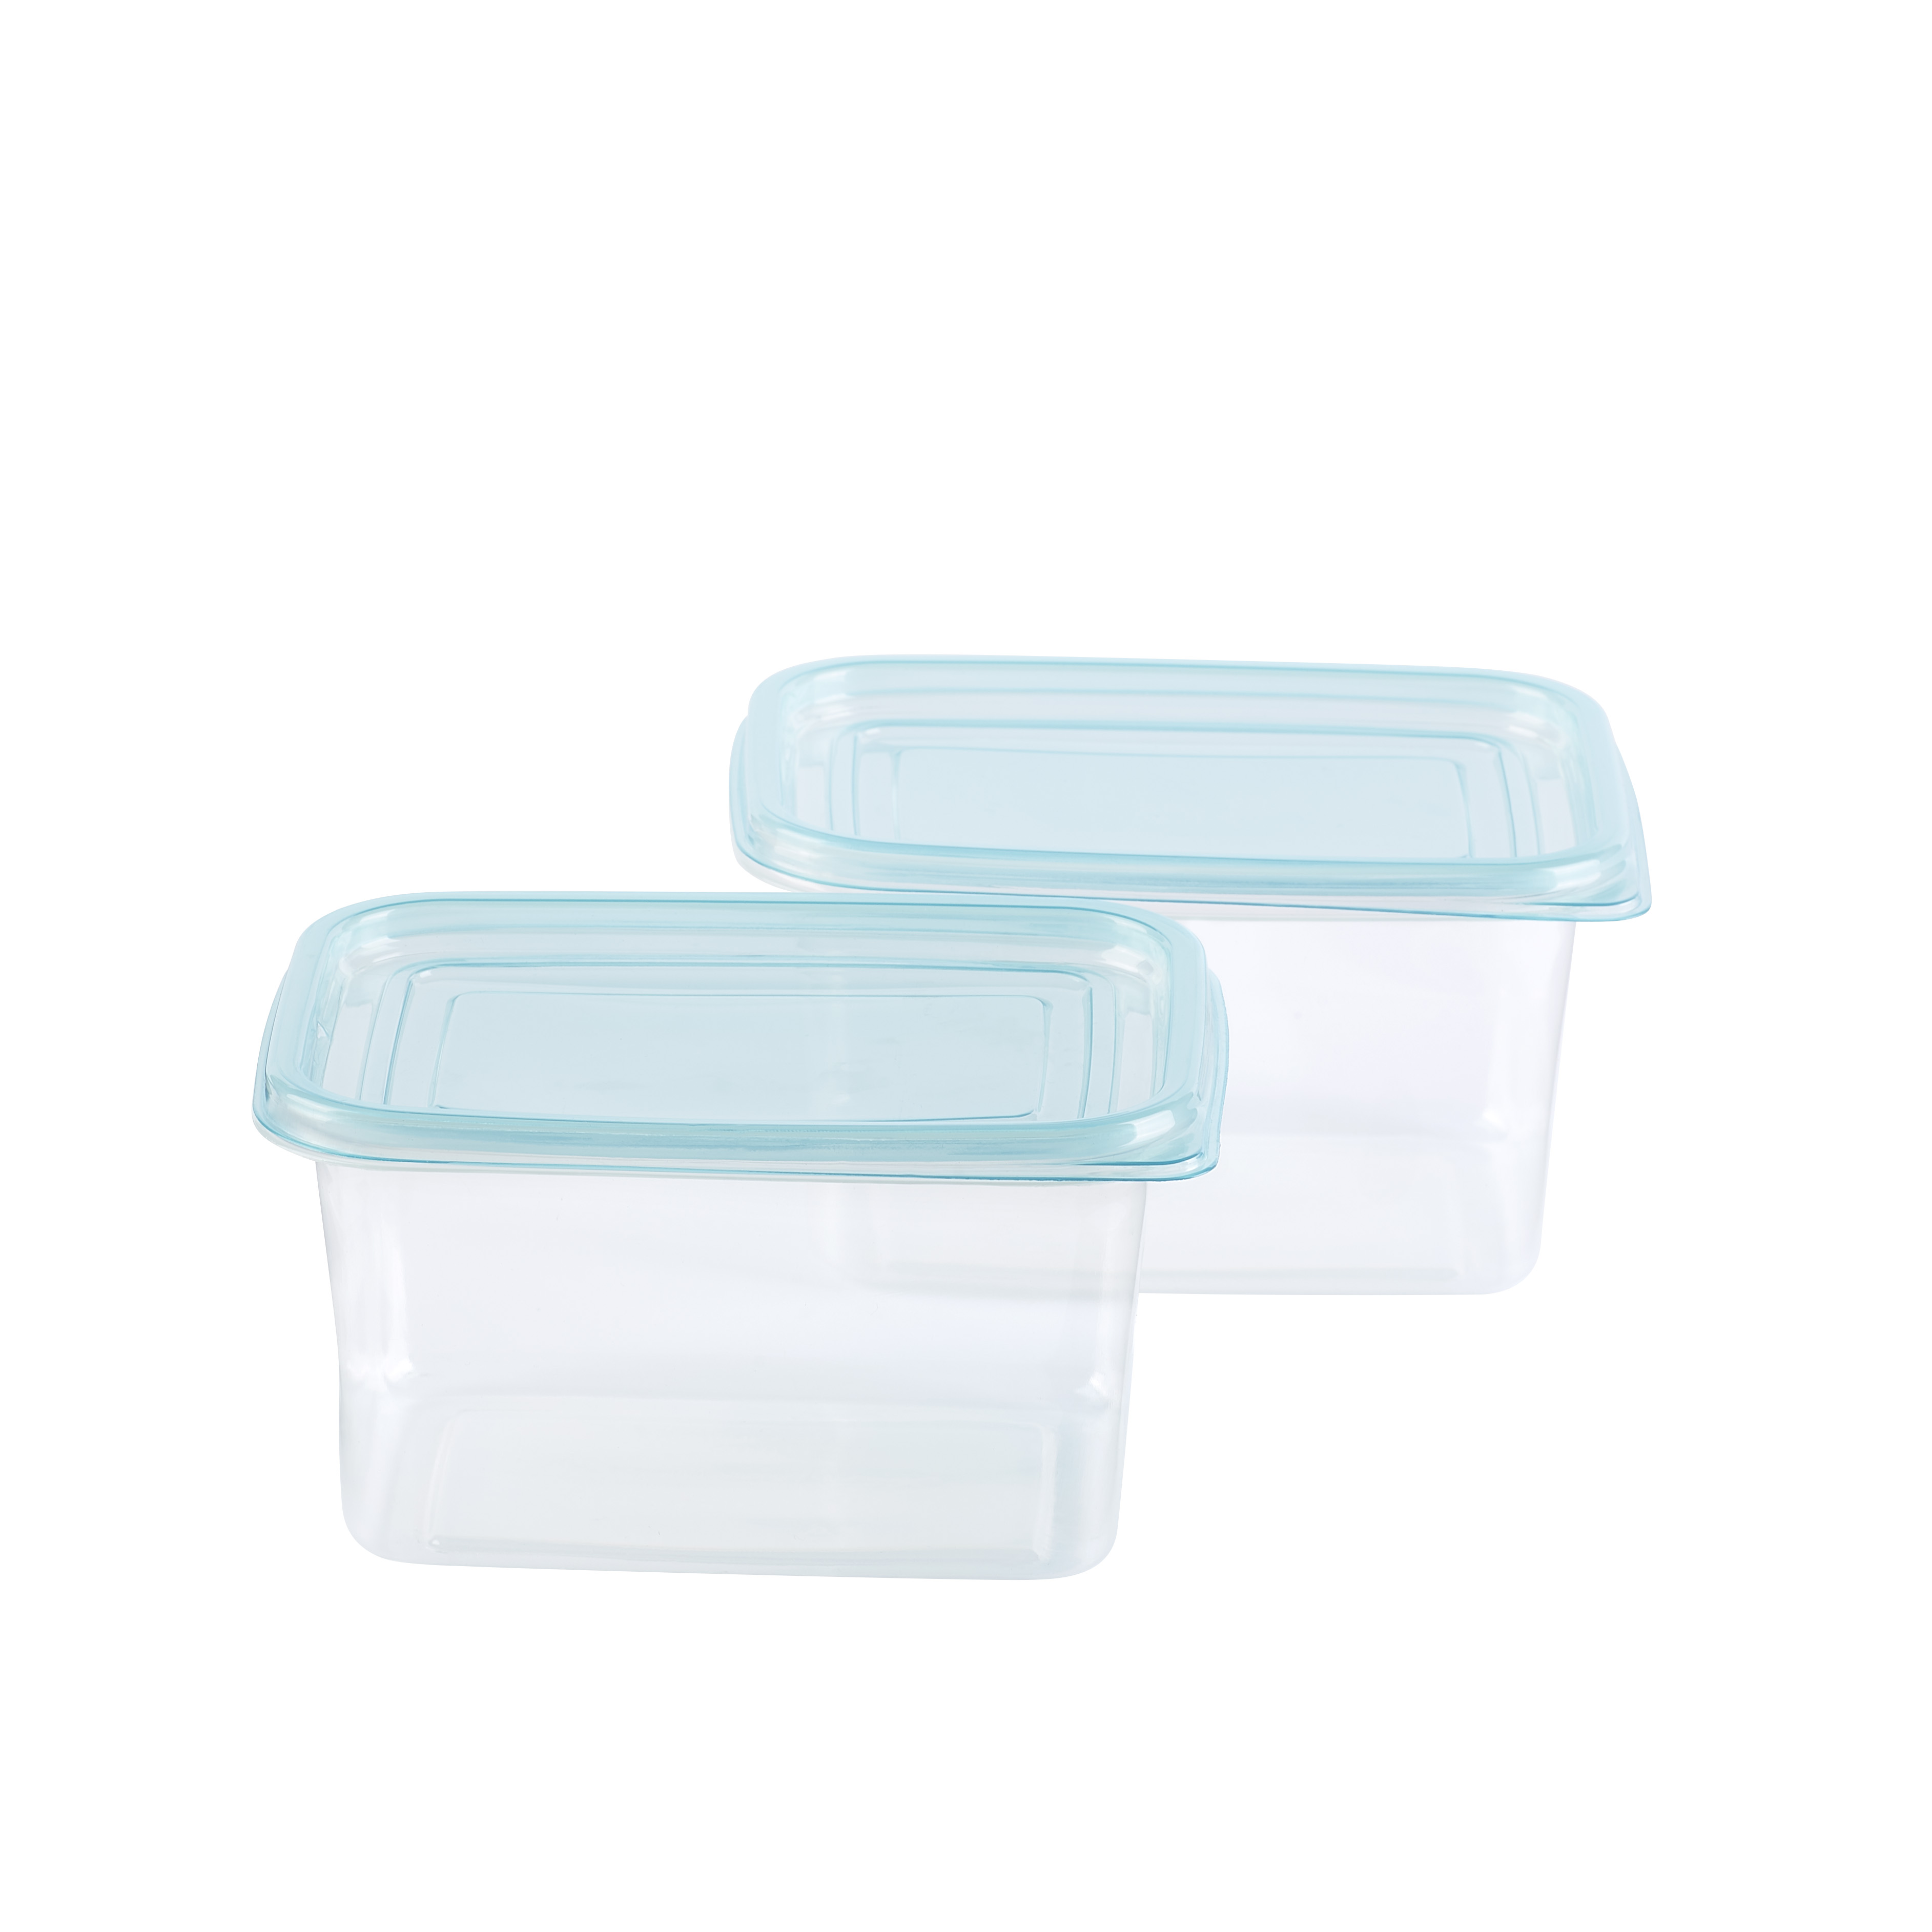 Mainstays Rectangular 5-Cup Food Storage Container, 2 Pack